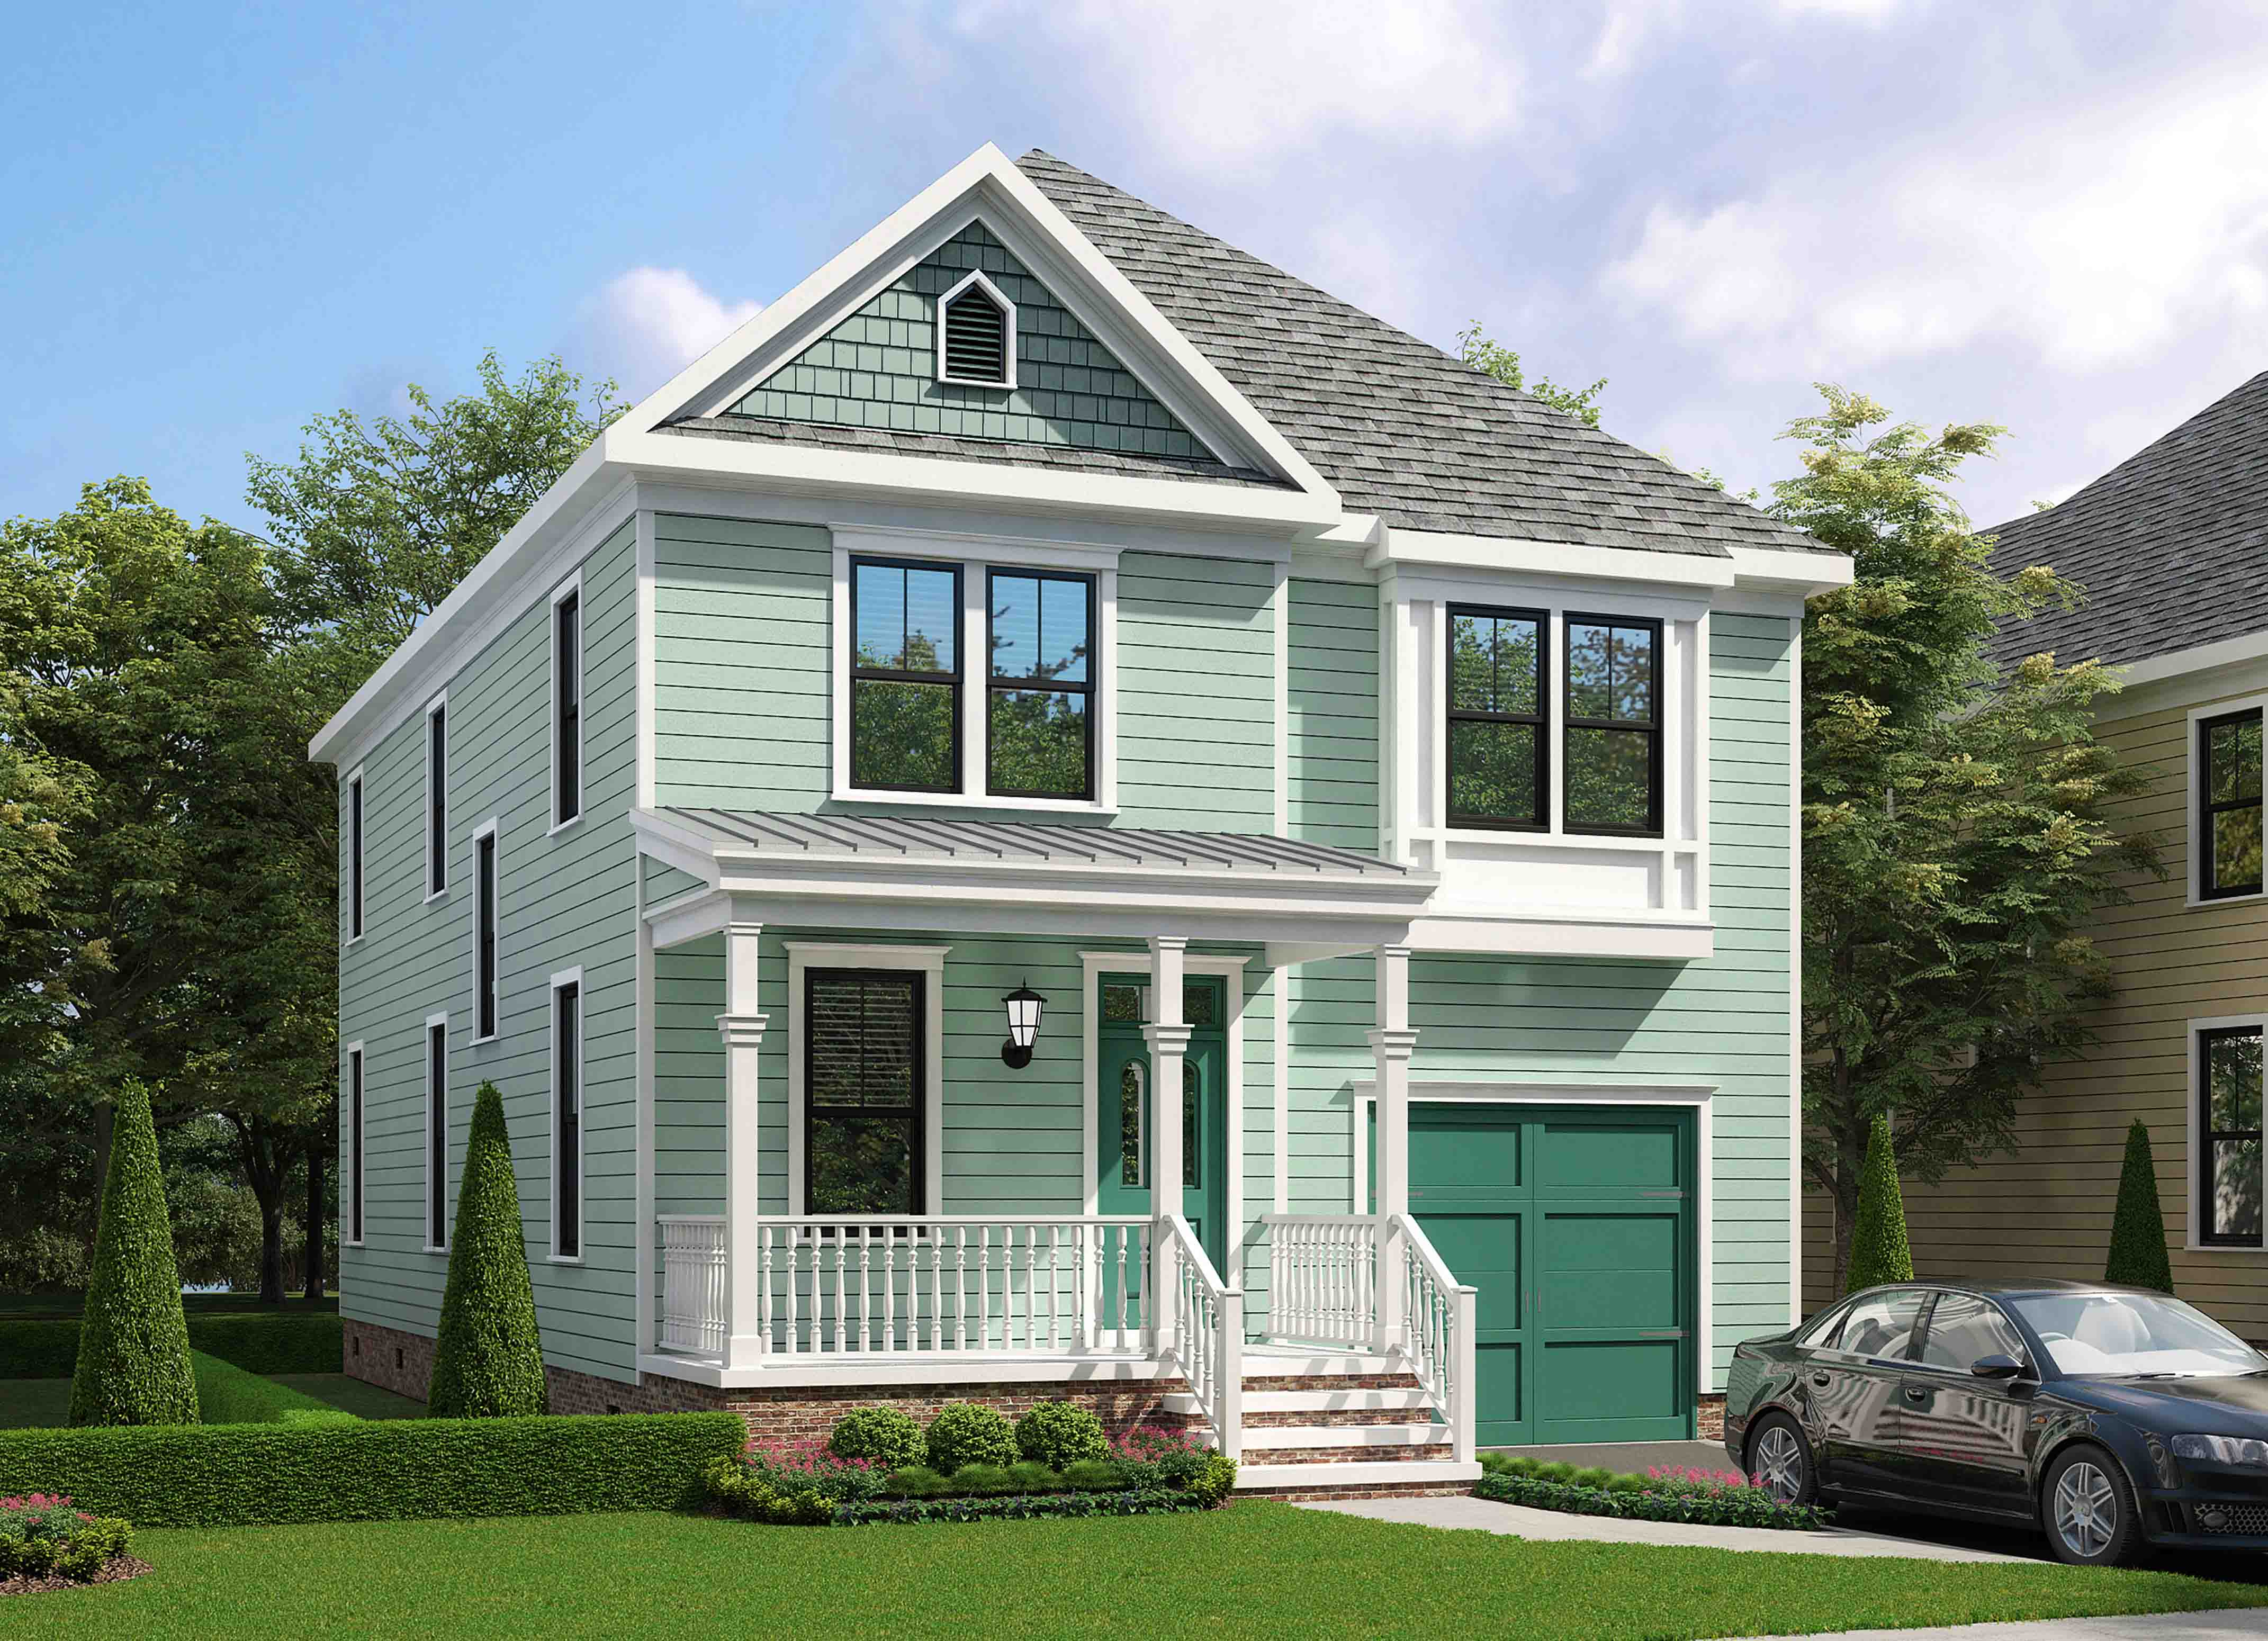 Front View image of Gabriella House Plan